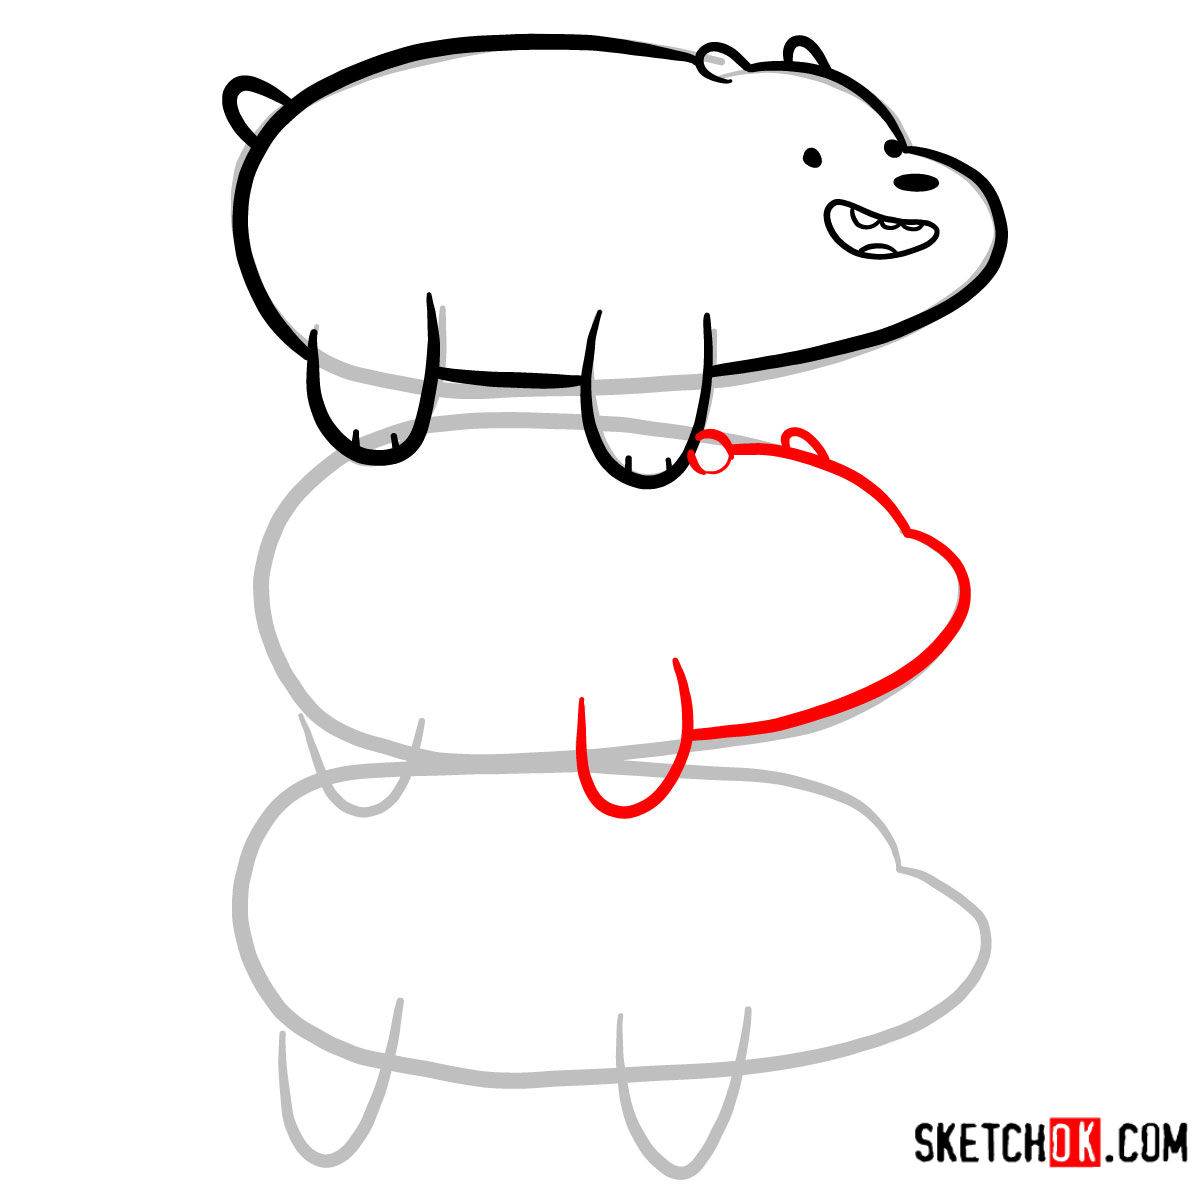 How to draw the bears standing on each others back | We Bare Bears - step 06